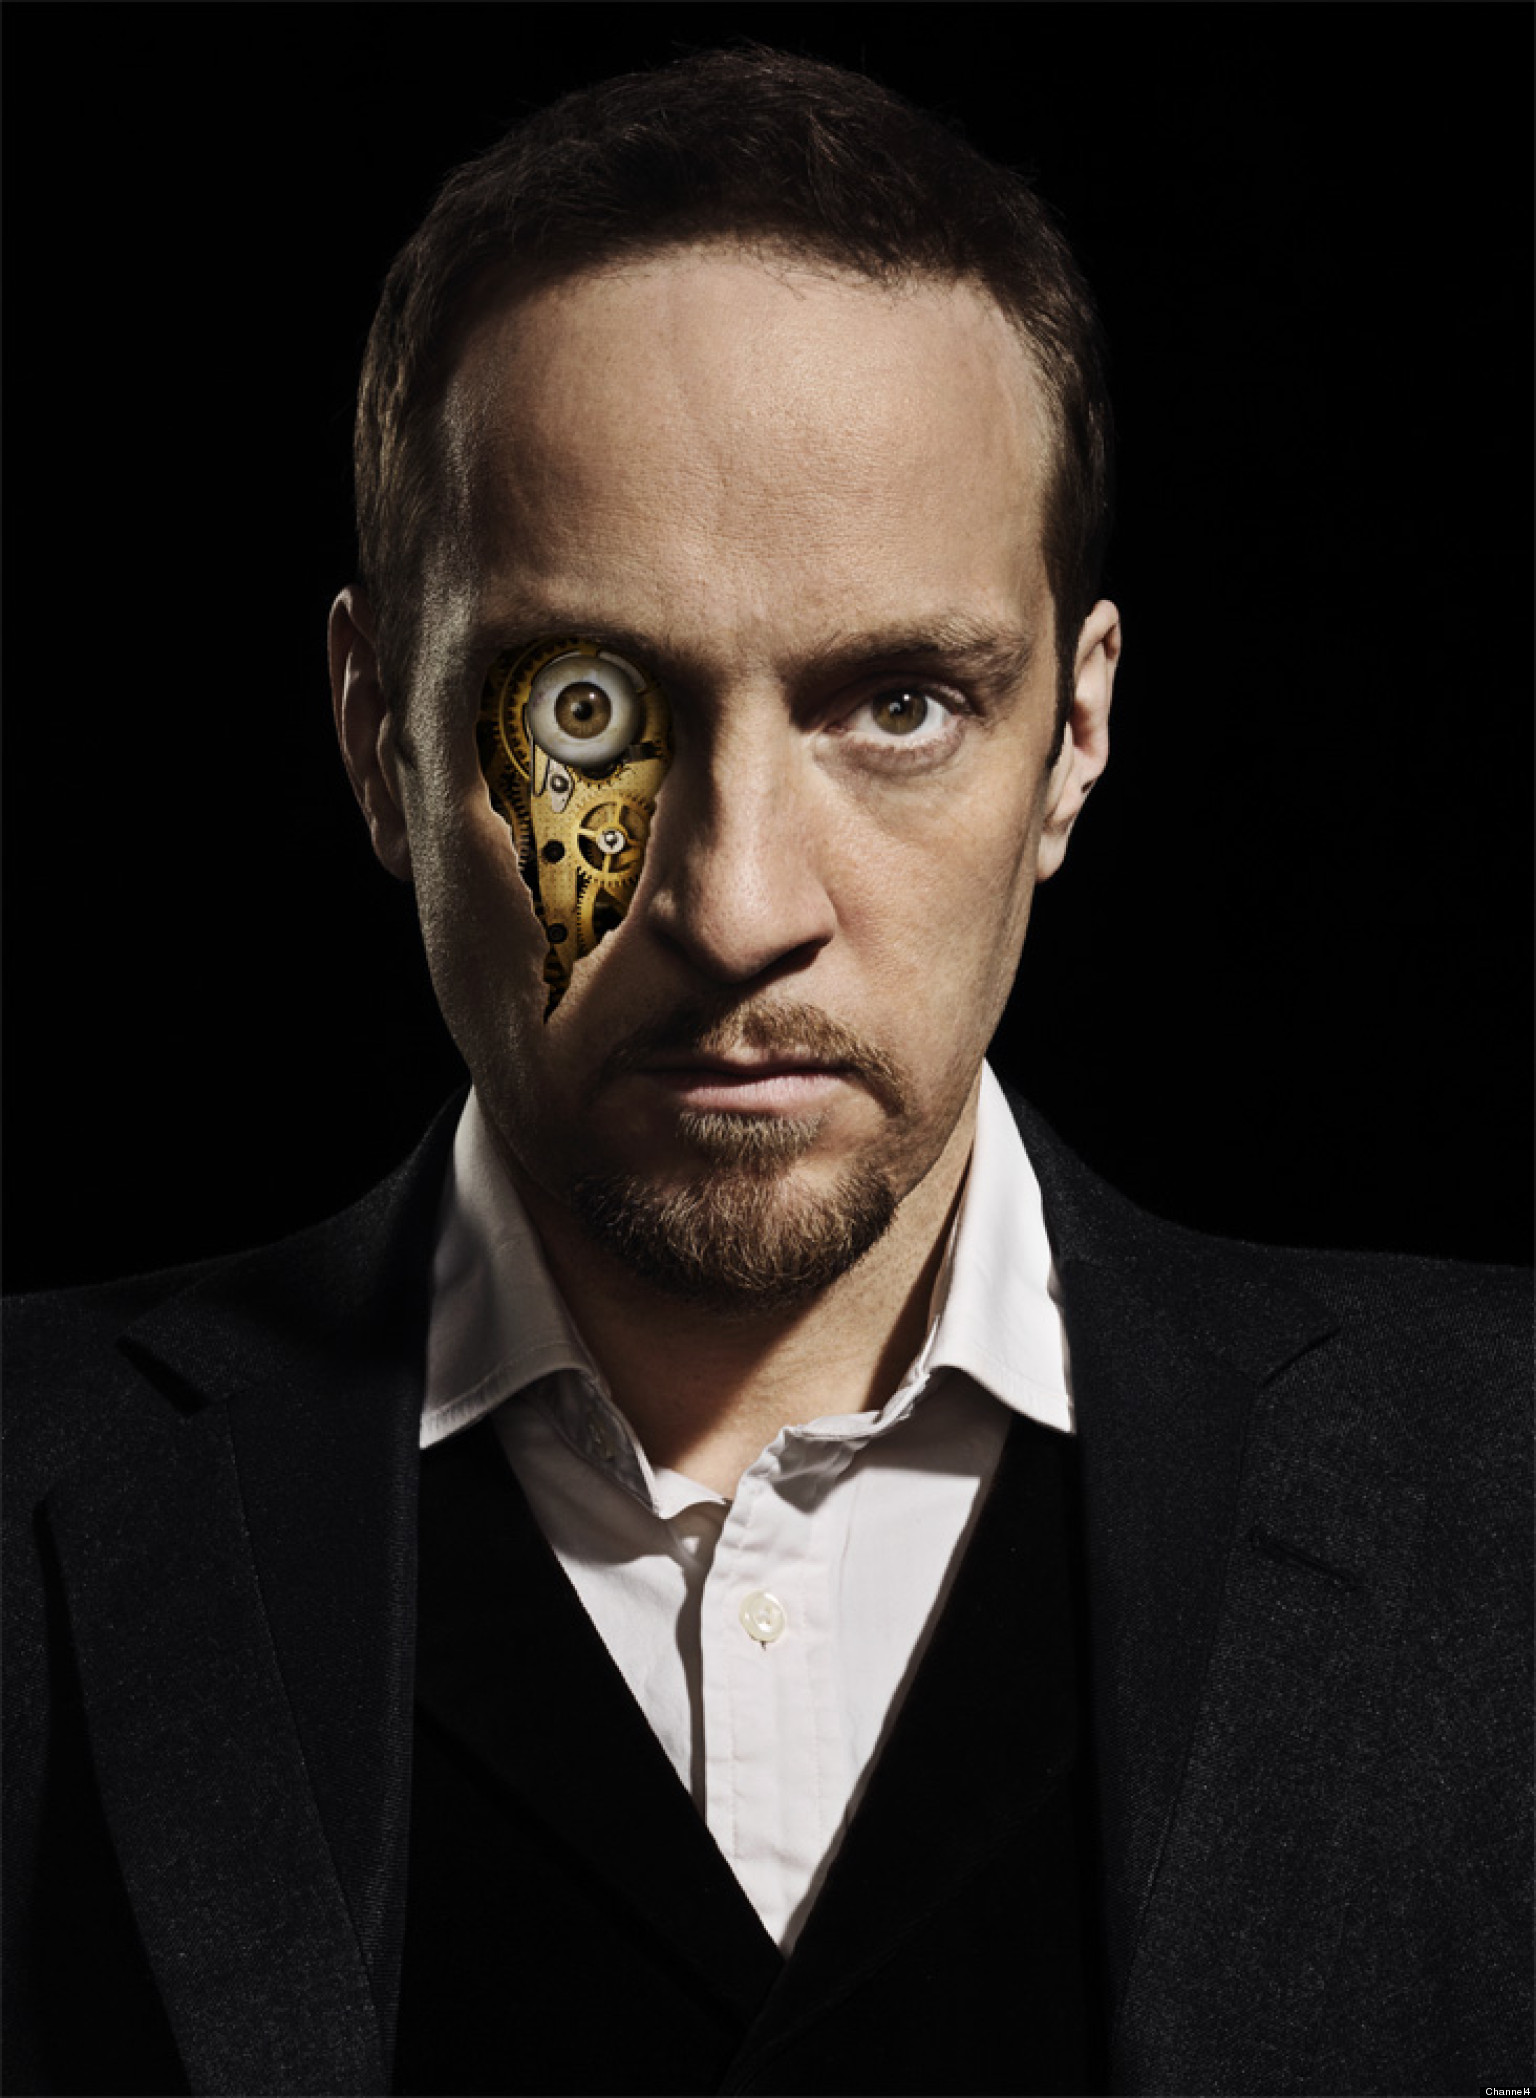 TV REVIEW: Derren Brown: Svengali - How Does He Do It? No, Really - I'm Asking. - o-DERREN-BROWN-facebook